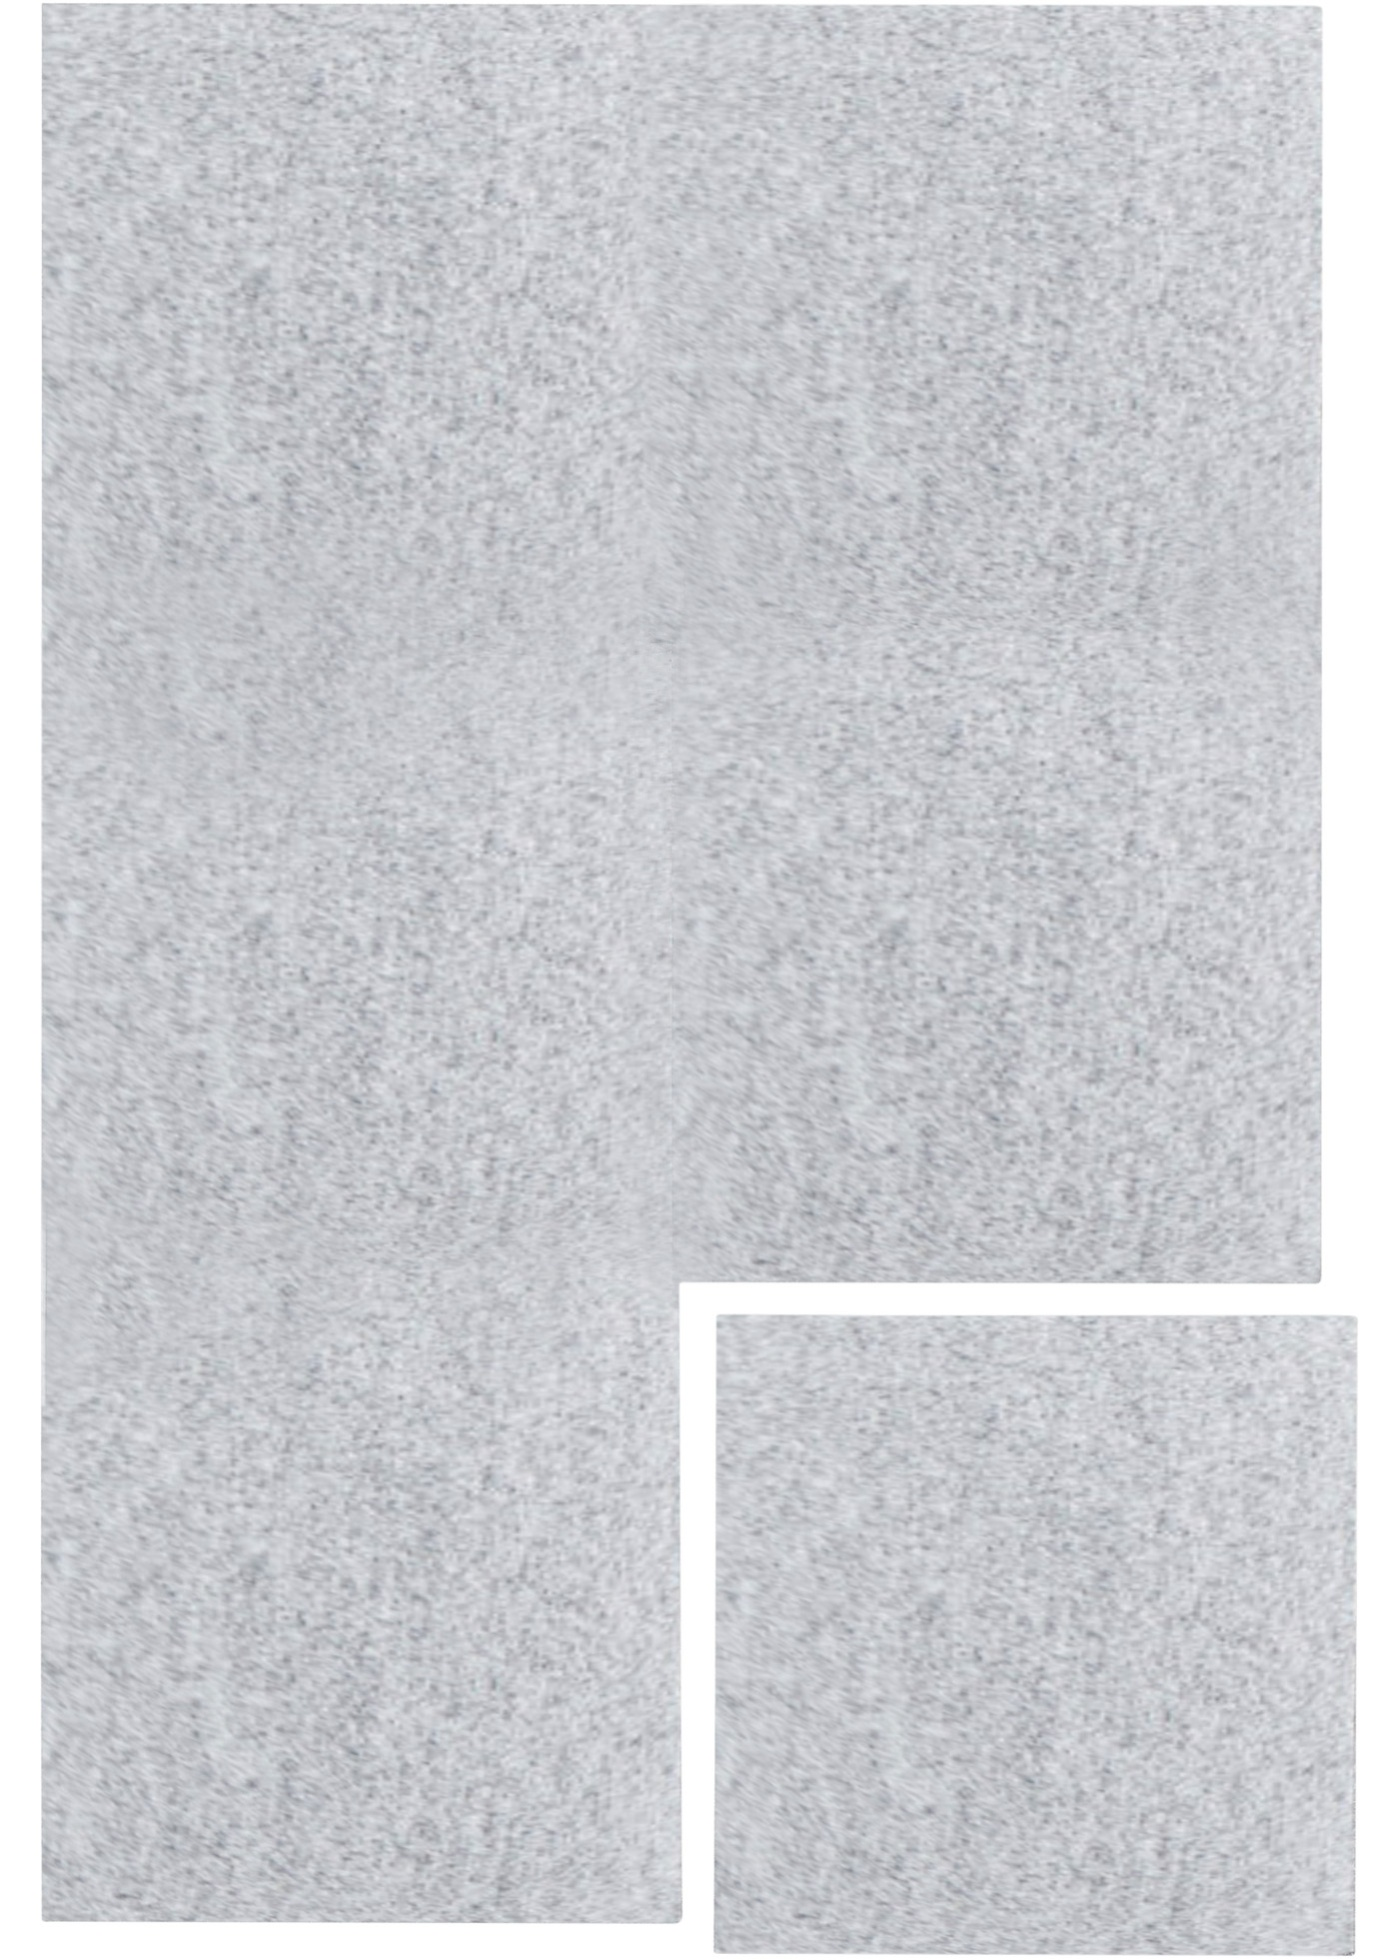 Piastrelle in moquette autoadesive (Grigio) - bpc living bonprix collection